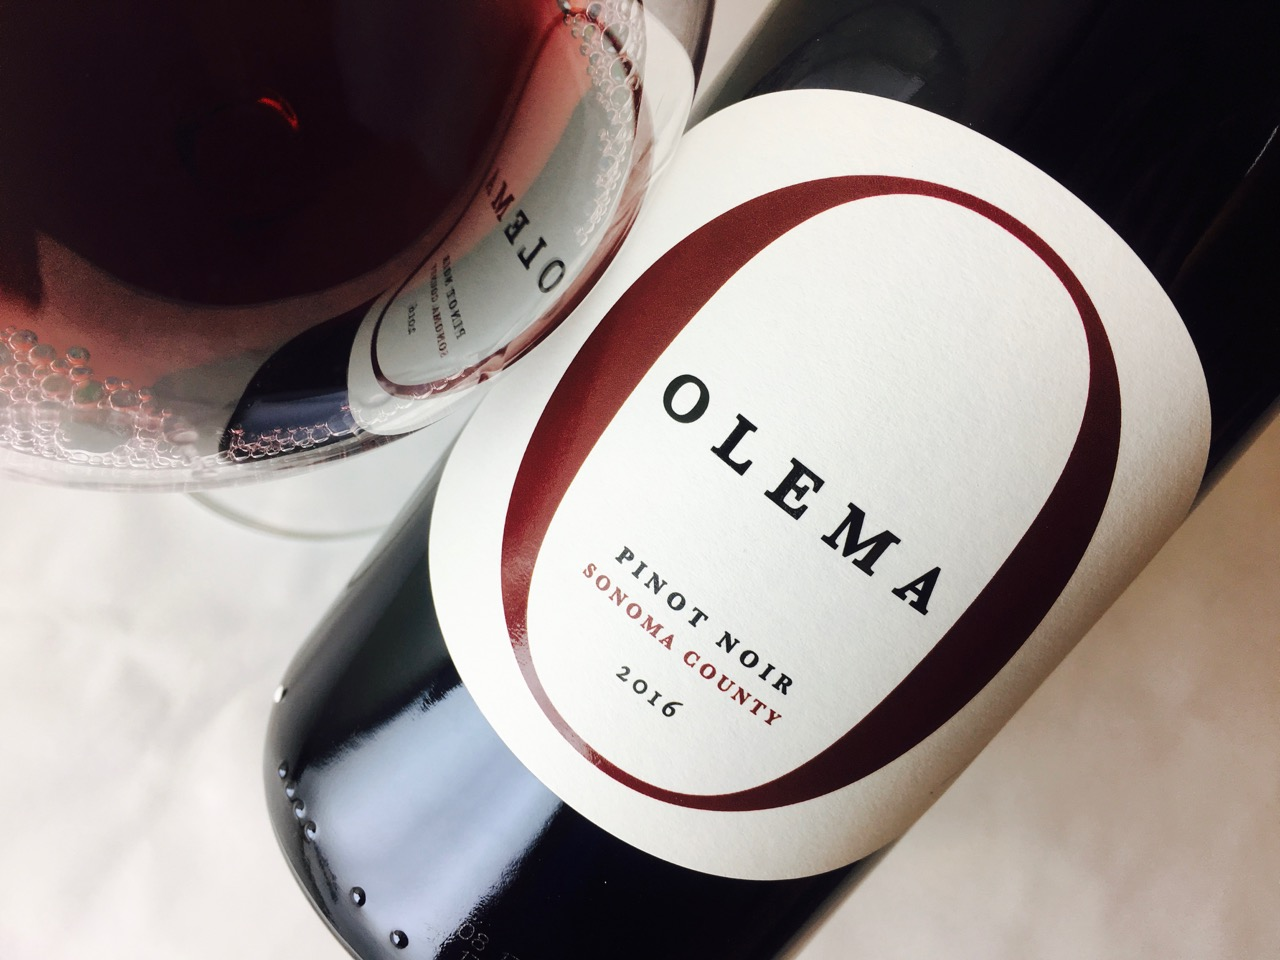 2016 Olema Pinot Noir Sonoma County